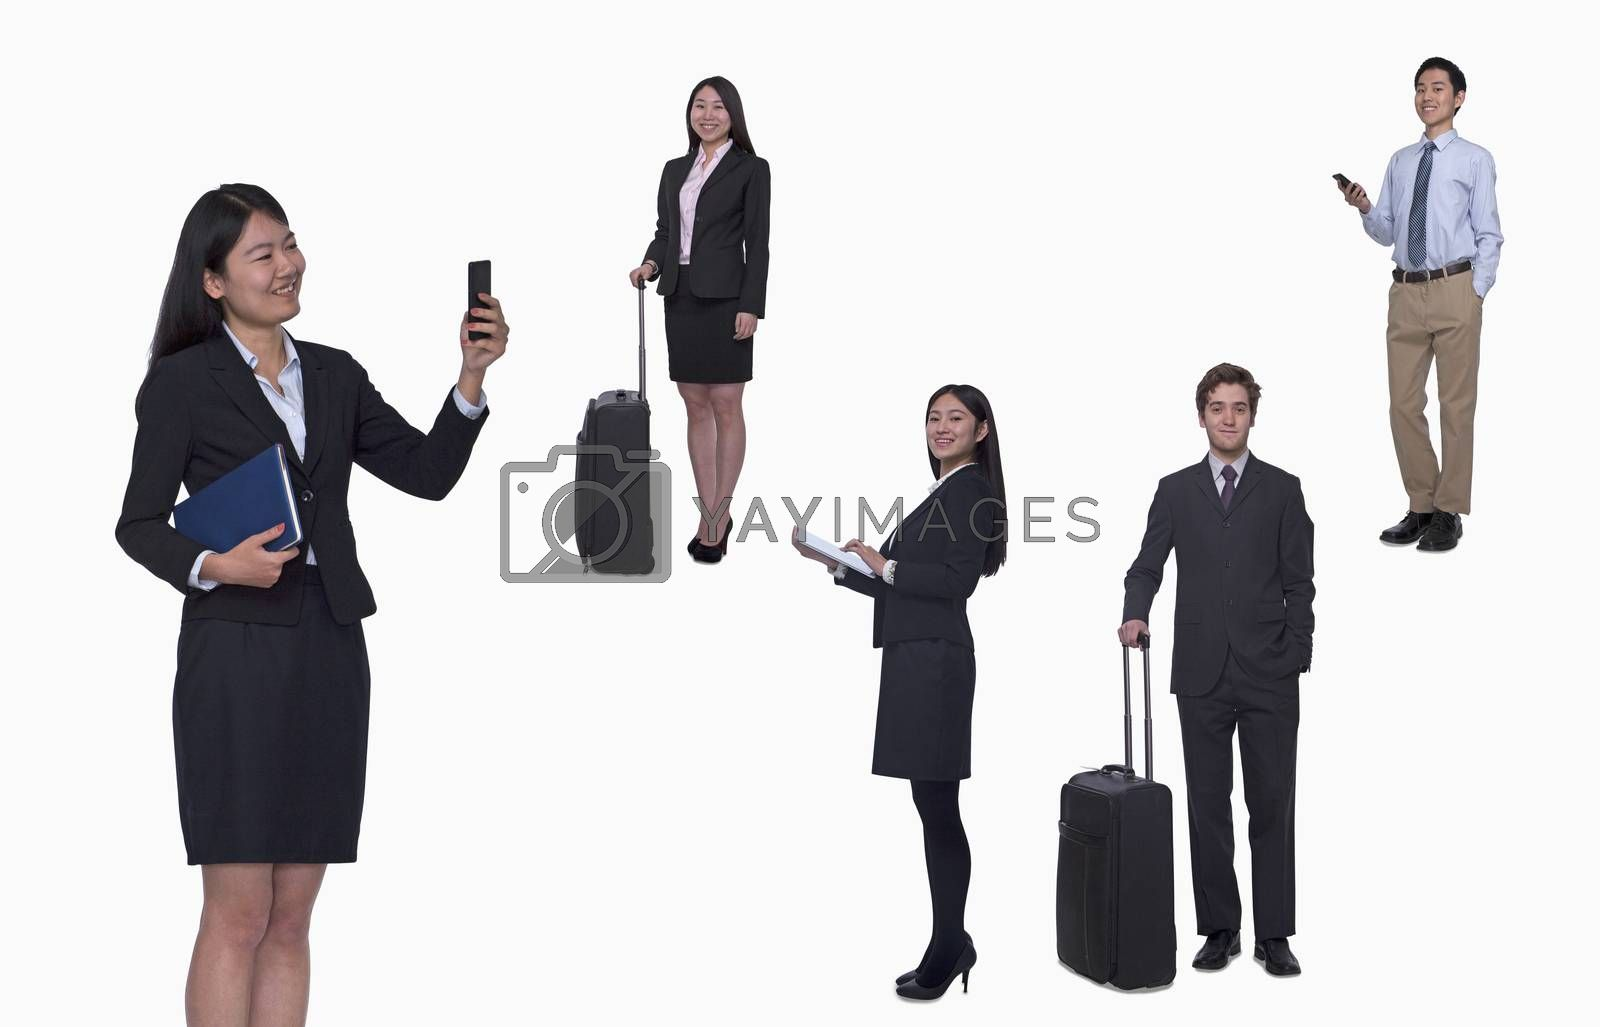 Group of business people working, taking photos, texting, studio shot, full length